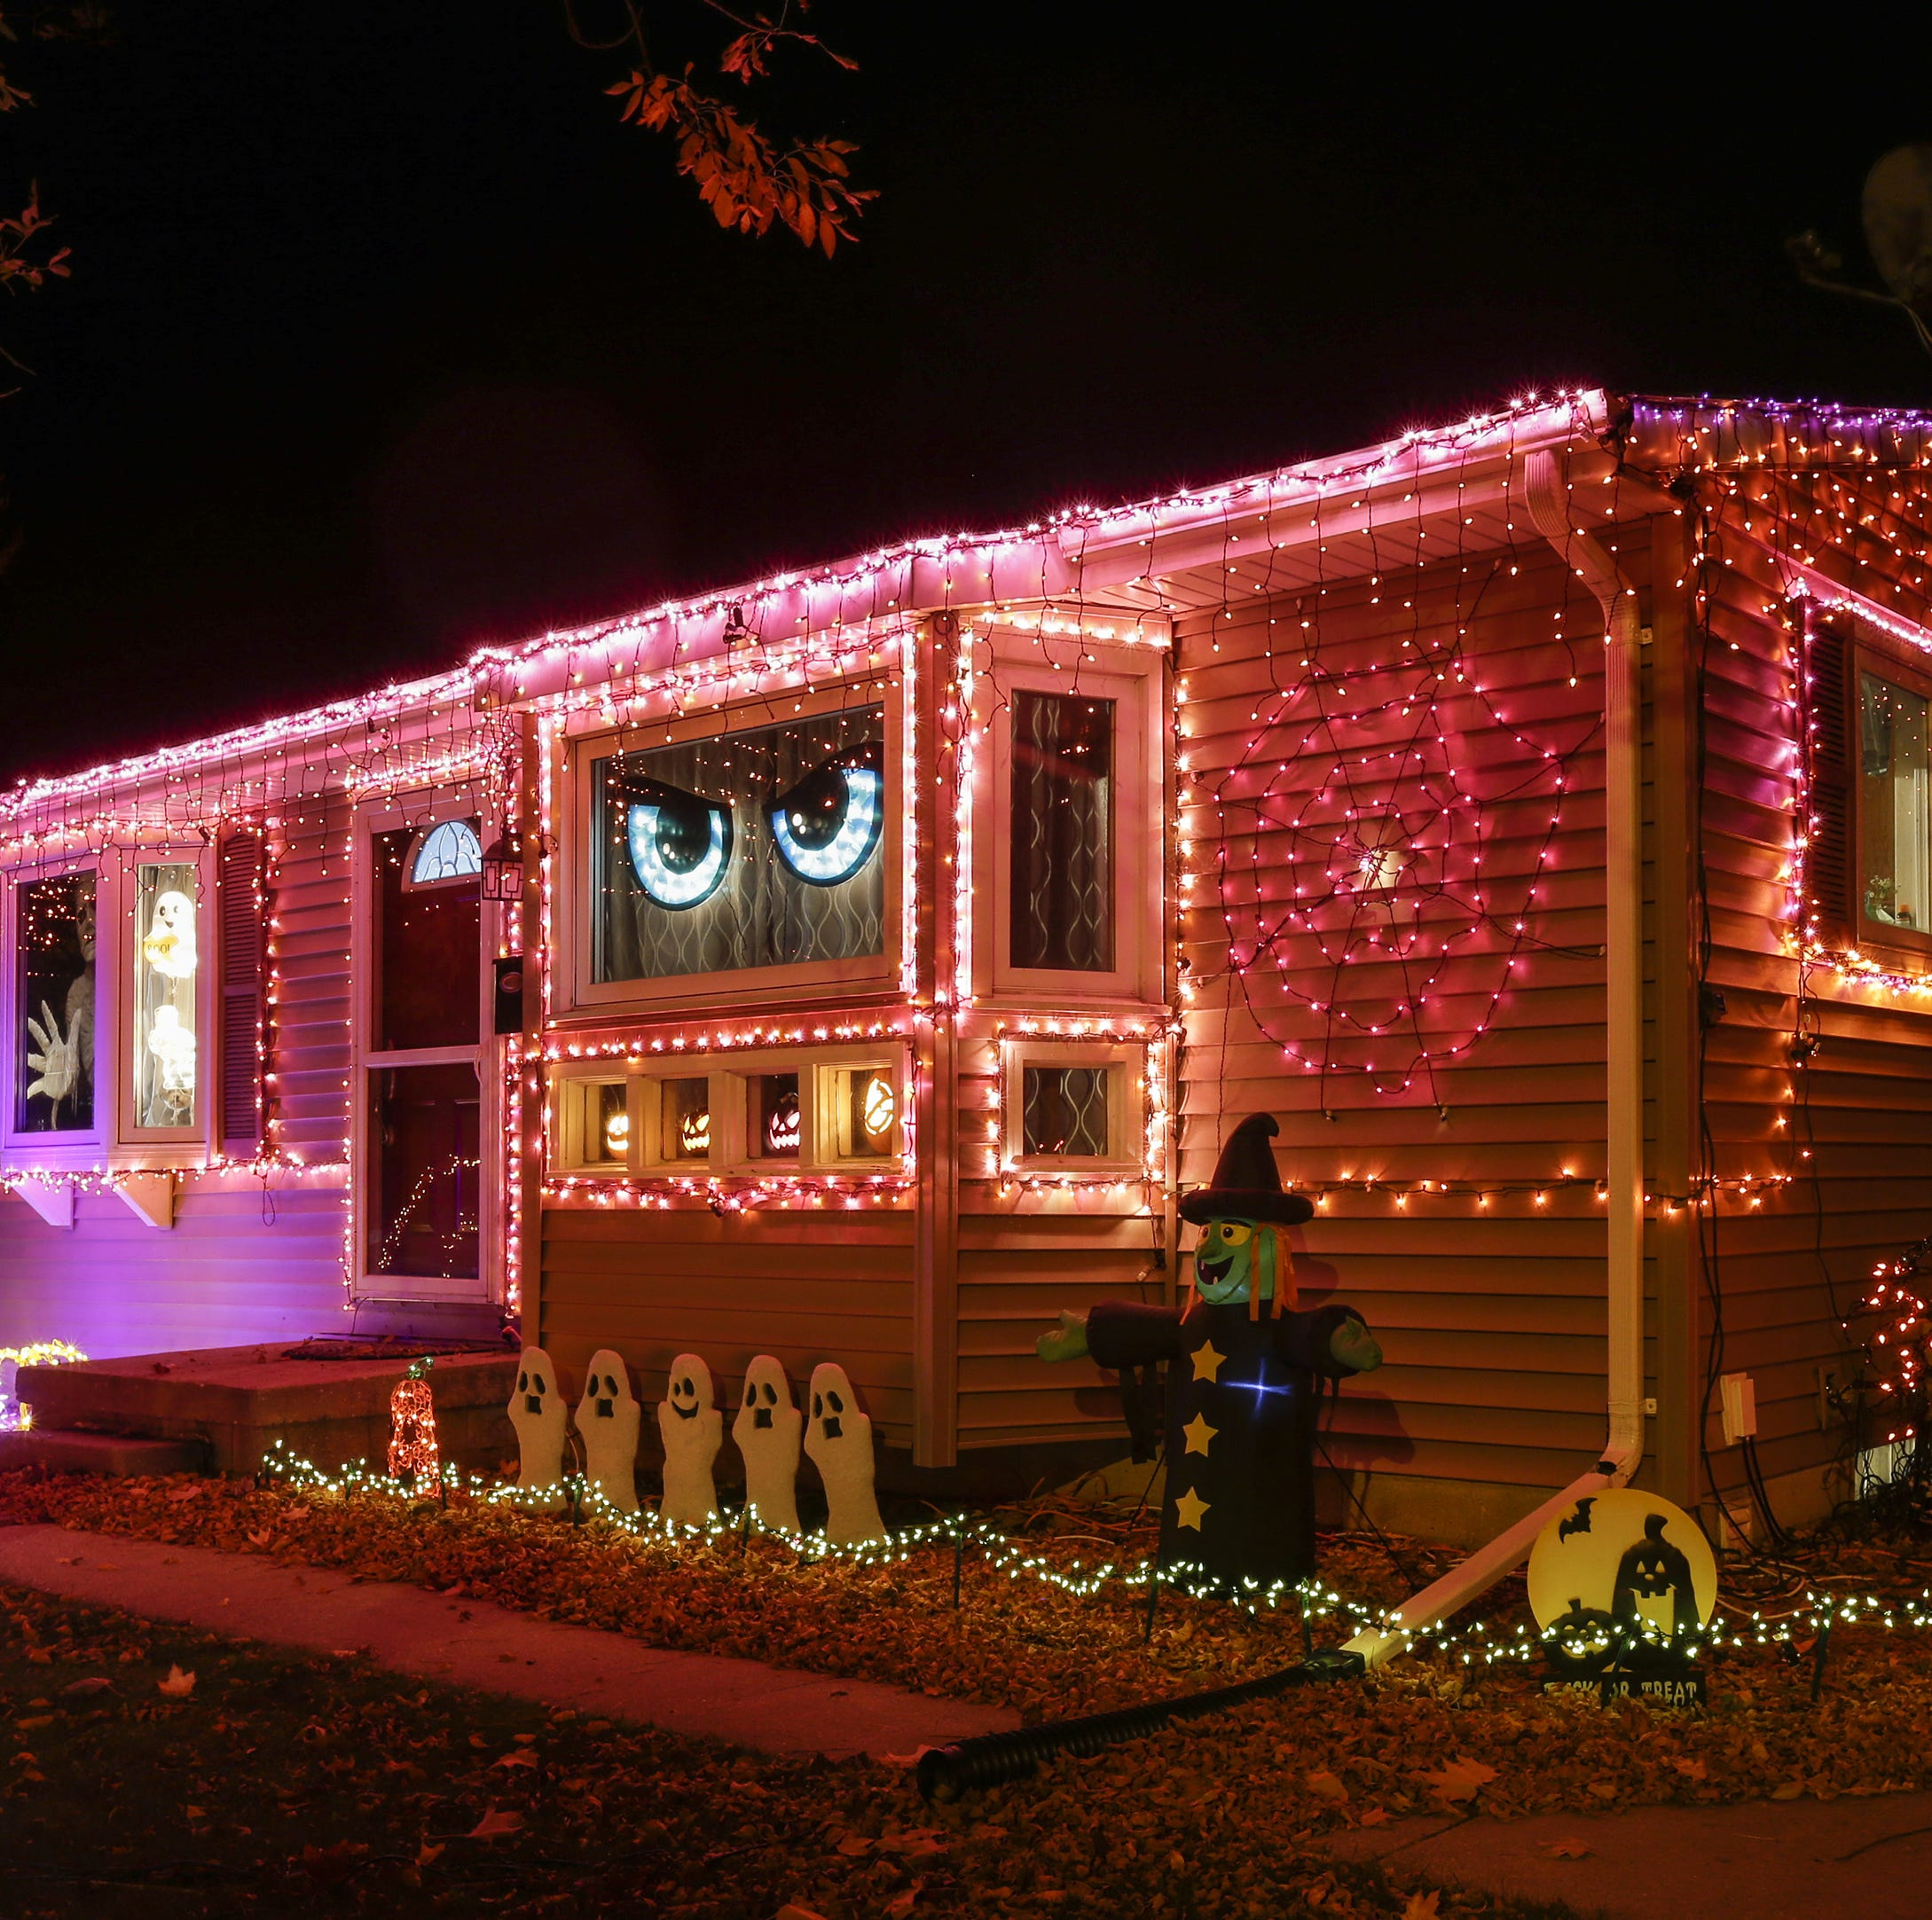 Manitowoc police officer Jeremy Kronforst's holiday lights a Lakeshore tradition